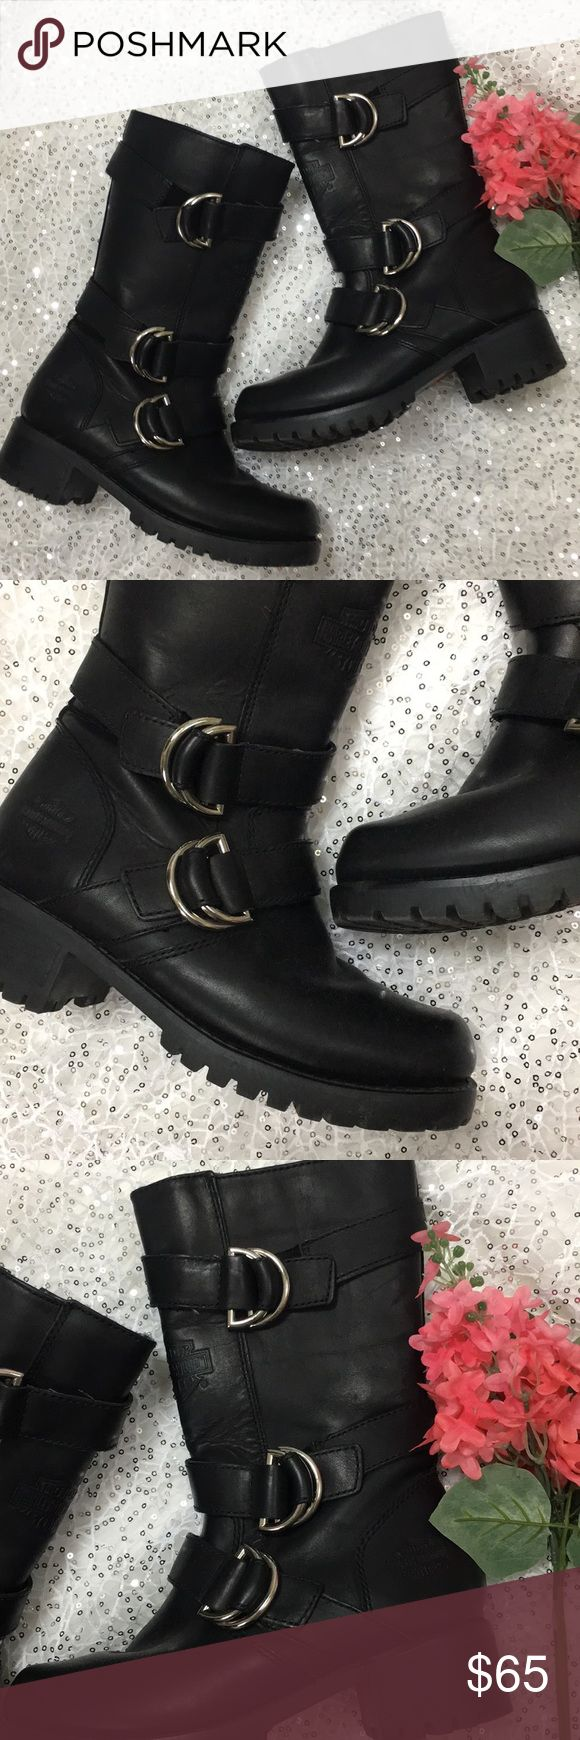 """Harley-Davidson Motorcycle Riding Mid-Calf Boots Harley-Davidson Motorcycle Riding Boots Black With Silver Buckles Mid-Calf Side Zip 1.5"""" Heel Leather Upper Balance  Man Made Materials  Size 5.5 Excellent Preowned Condition Harley-Davidson Shoes Combat & Moto Boots"""